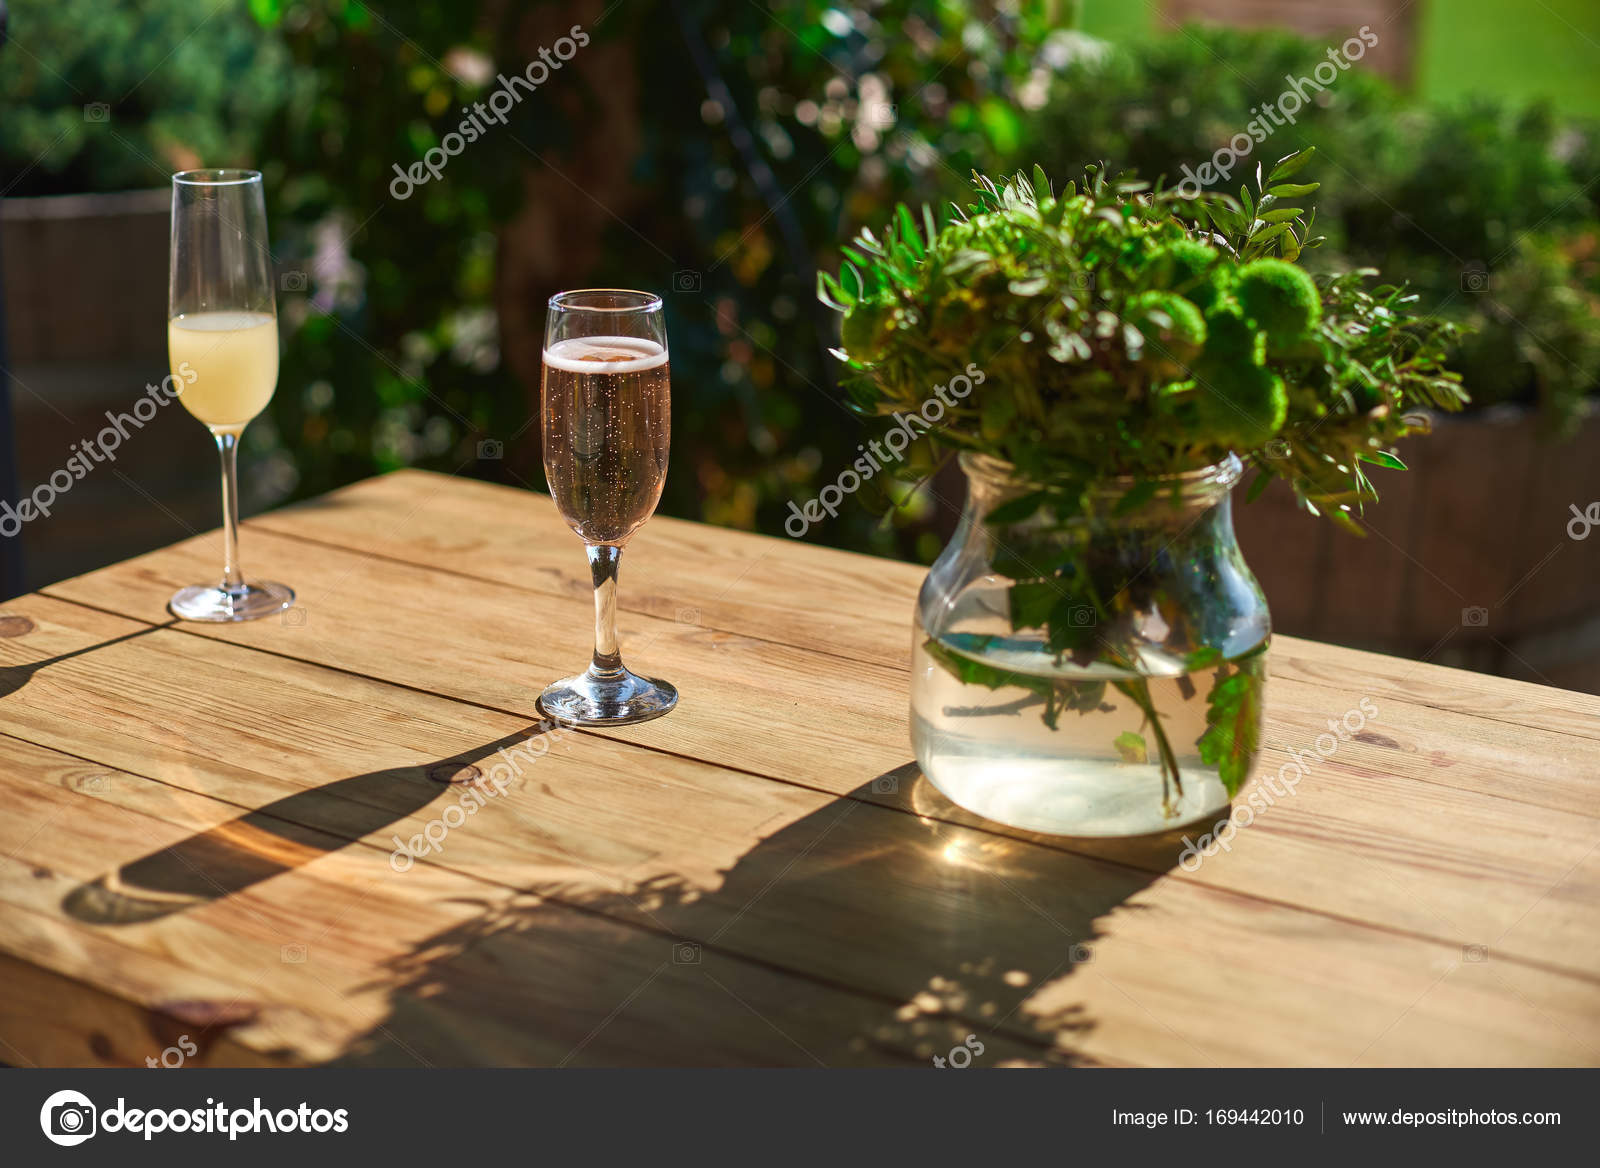 gem tliche terrasse glas mit champagner auf einem holztisch stockfoto izik md 169442010. Black Bedroom Furniture Sets. Home Design Ideas